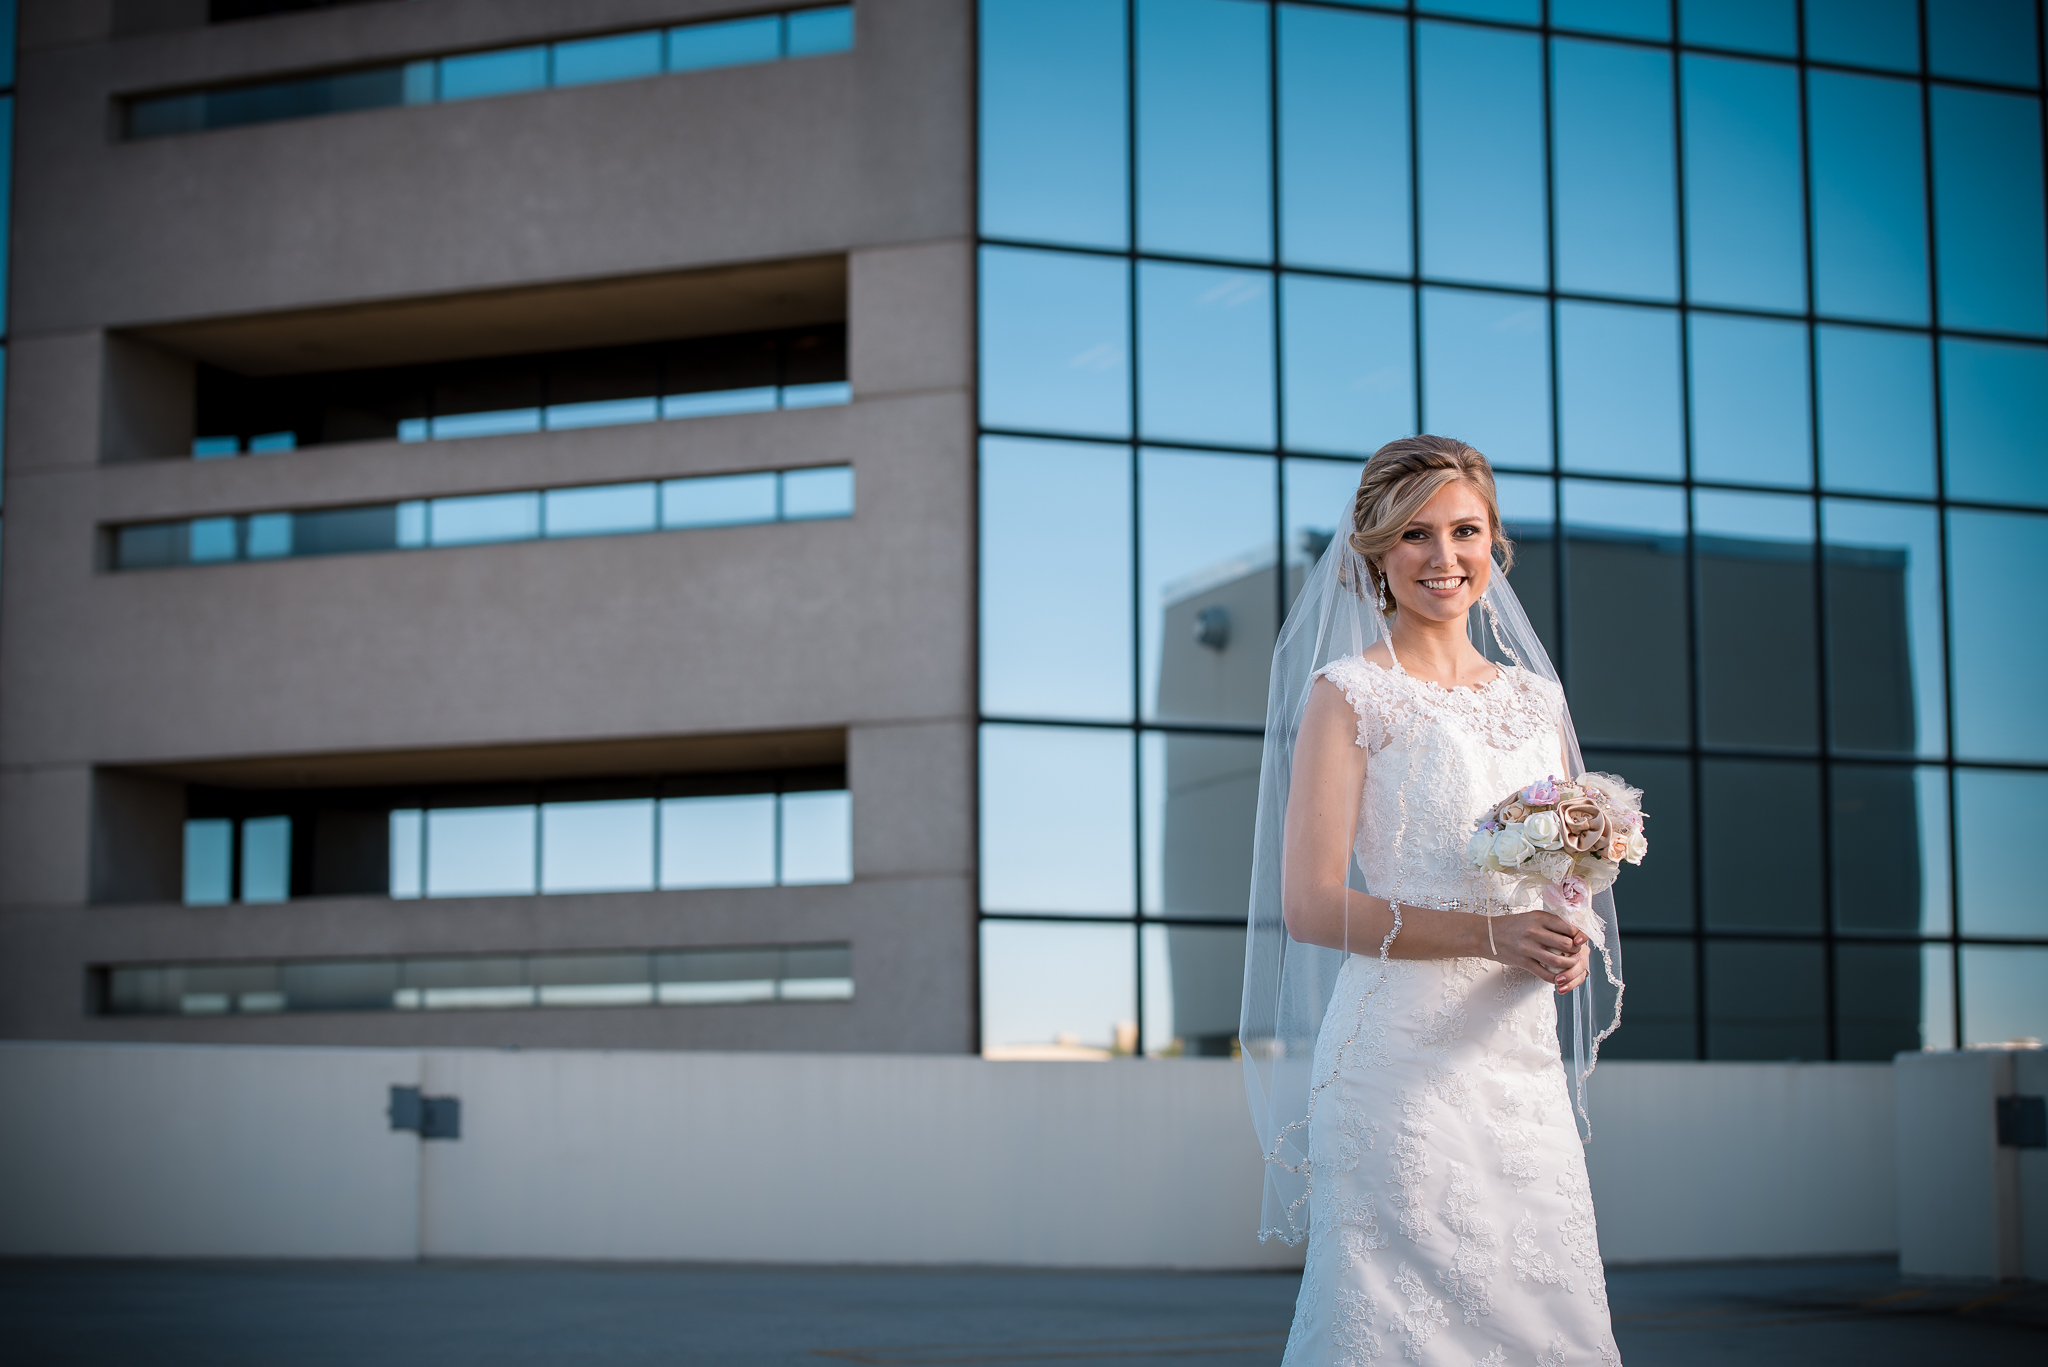 Rebecca | Downtown Greenville Bridal Portrait Photos | The Commerce Club